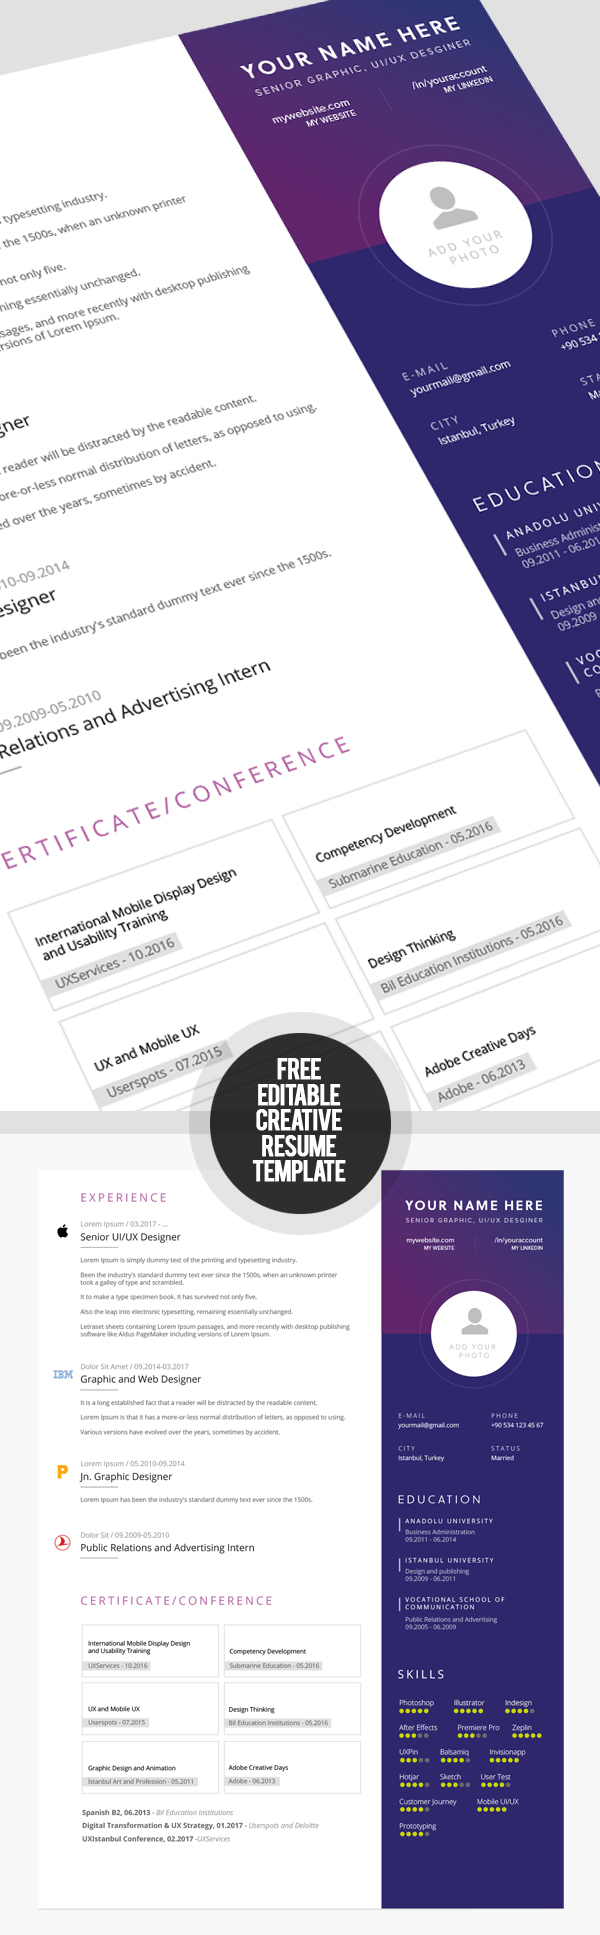 50 Free Resume Templates: Best Of 2018 -  19